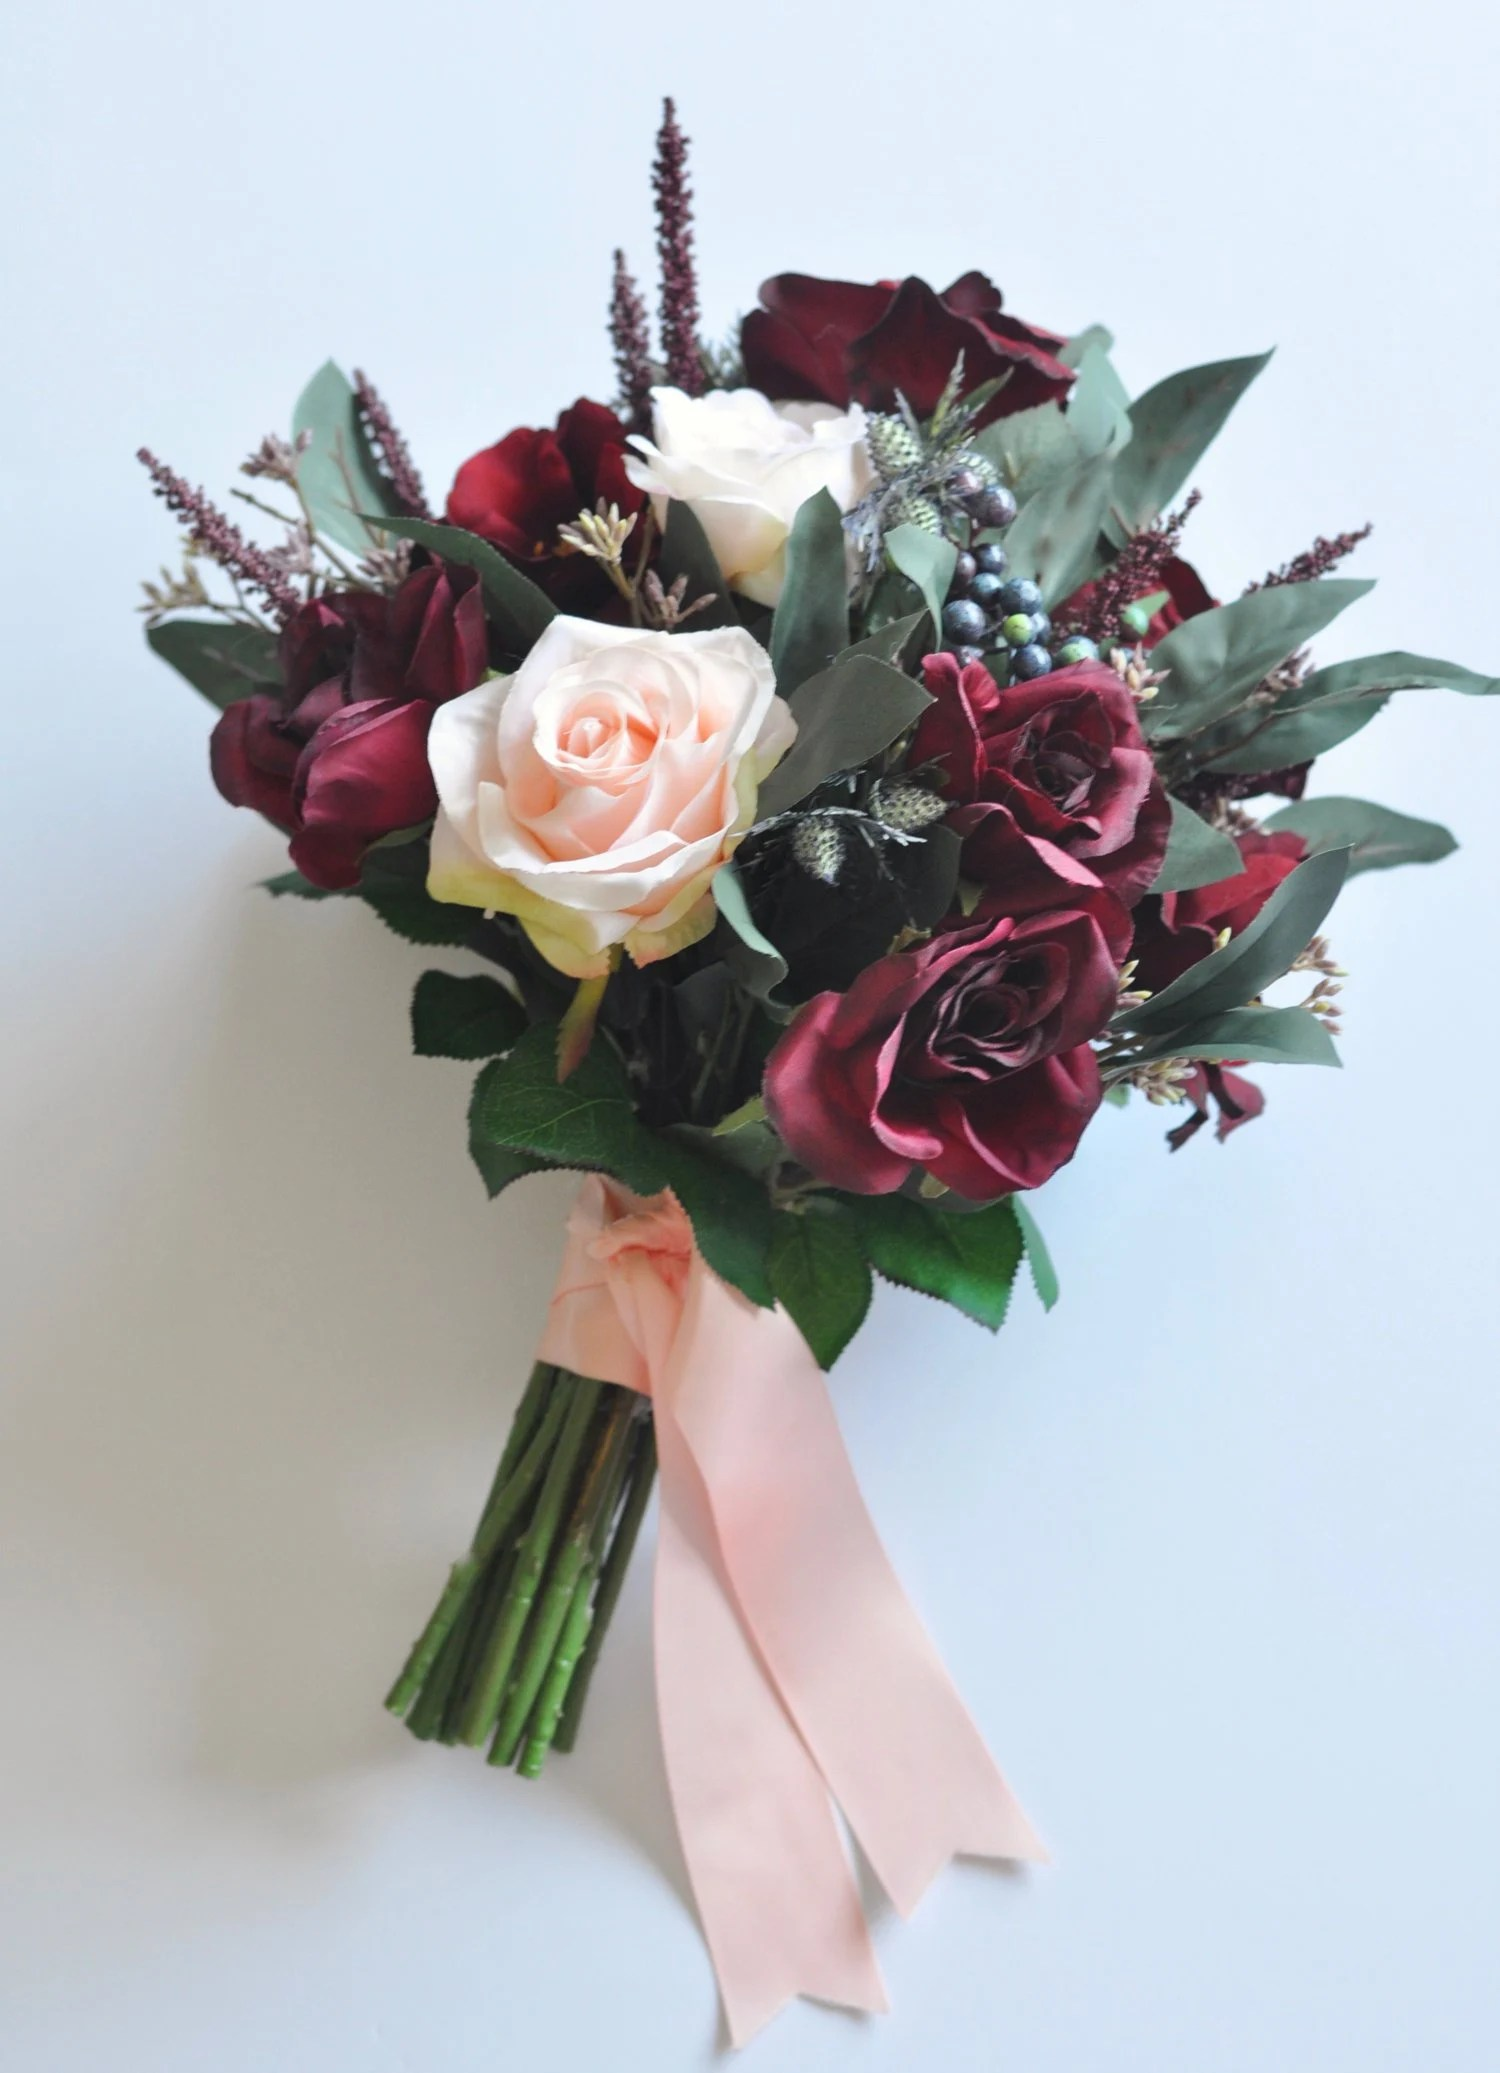 Celina Küchen Finn Burgundy Wedding Bouquet Wedding Flowers Bridal Bouquet Thistle Eucalyptus Roses Artificial Flowers Destination Wedding Silk Flowers